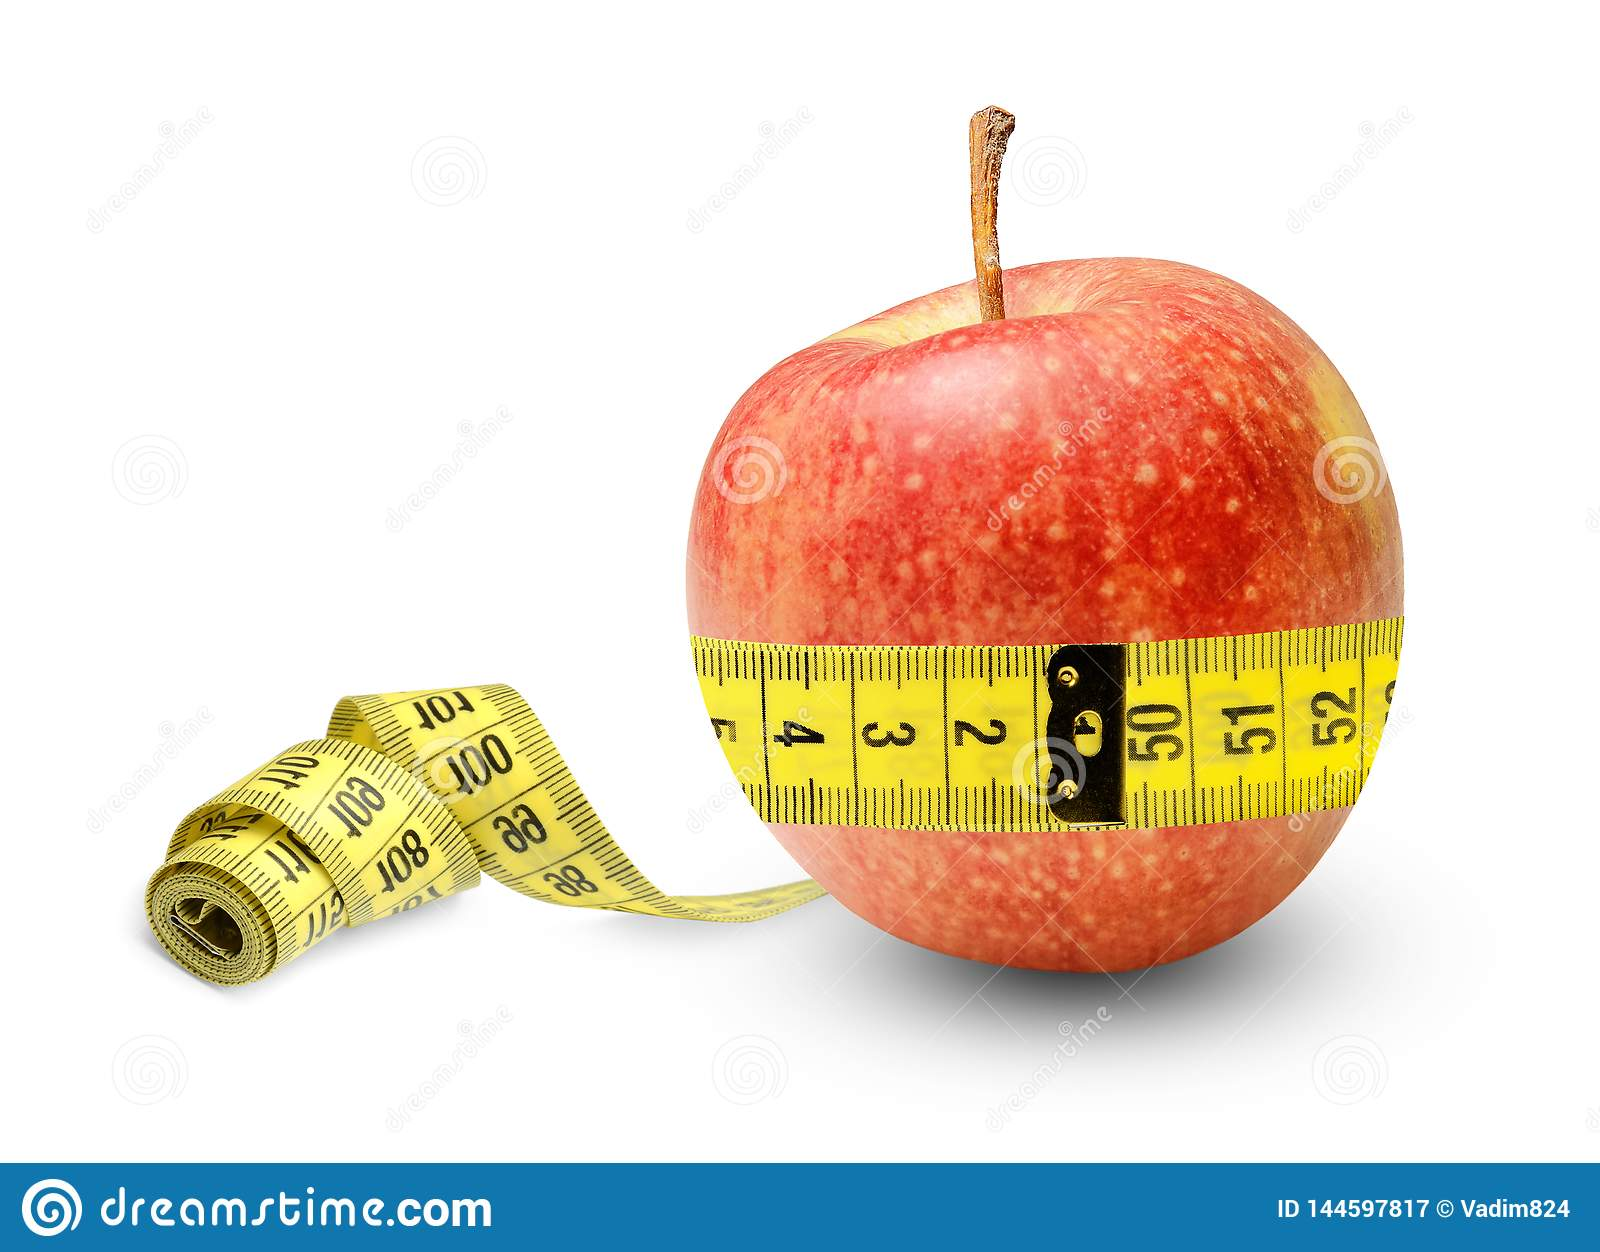 An apple full of strength and health measures its waist and is quite the result..Symbol of proper nutrition.